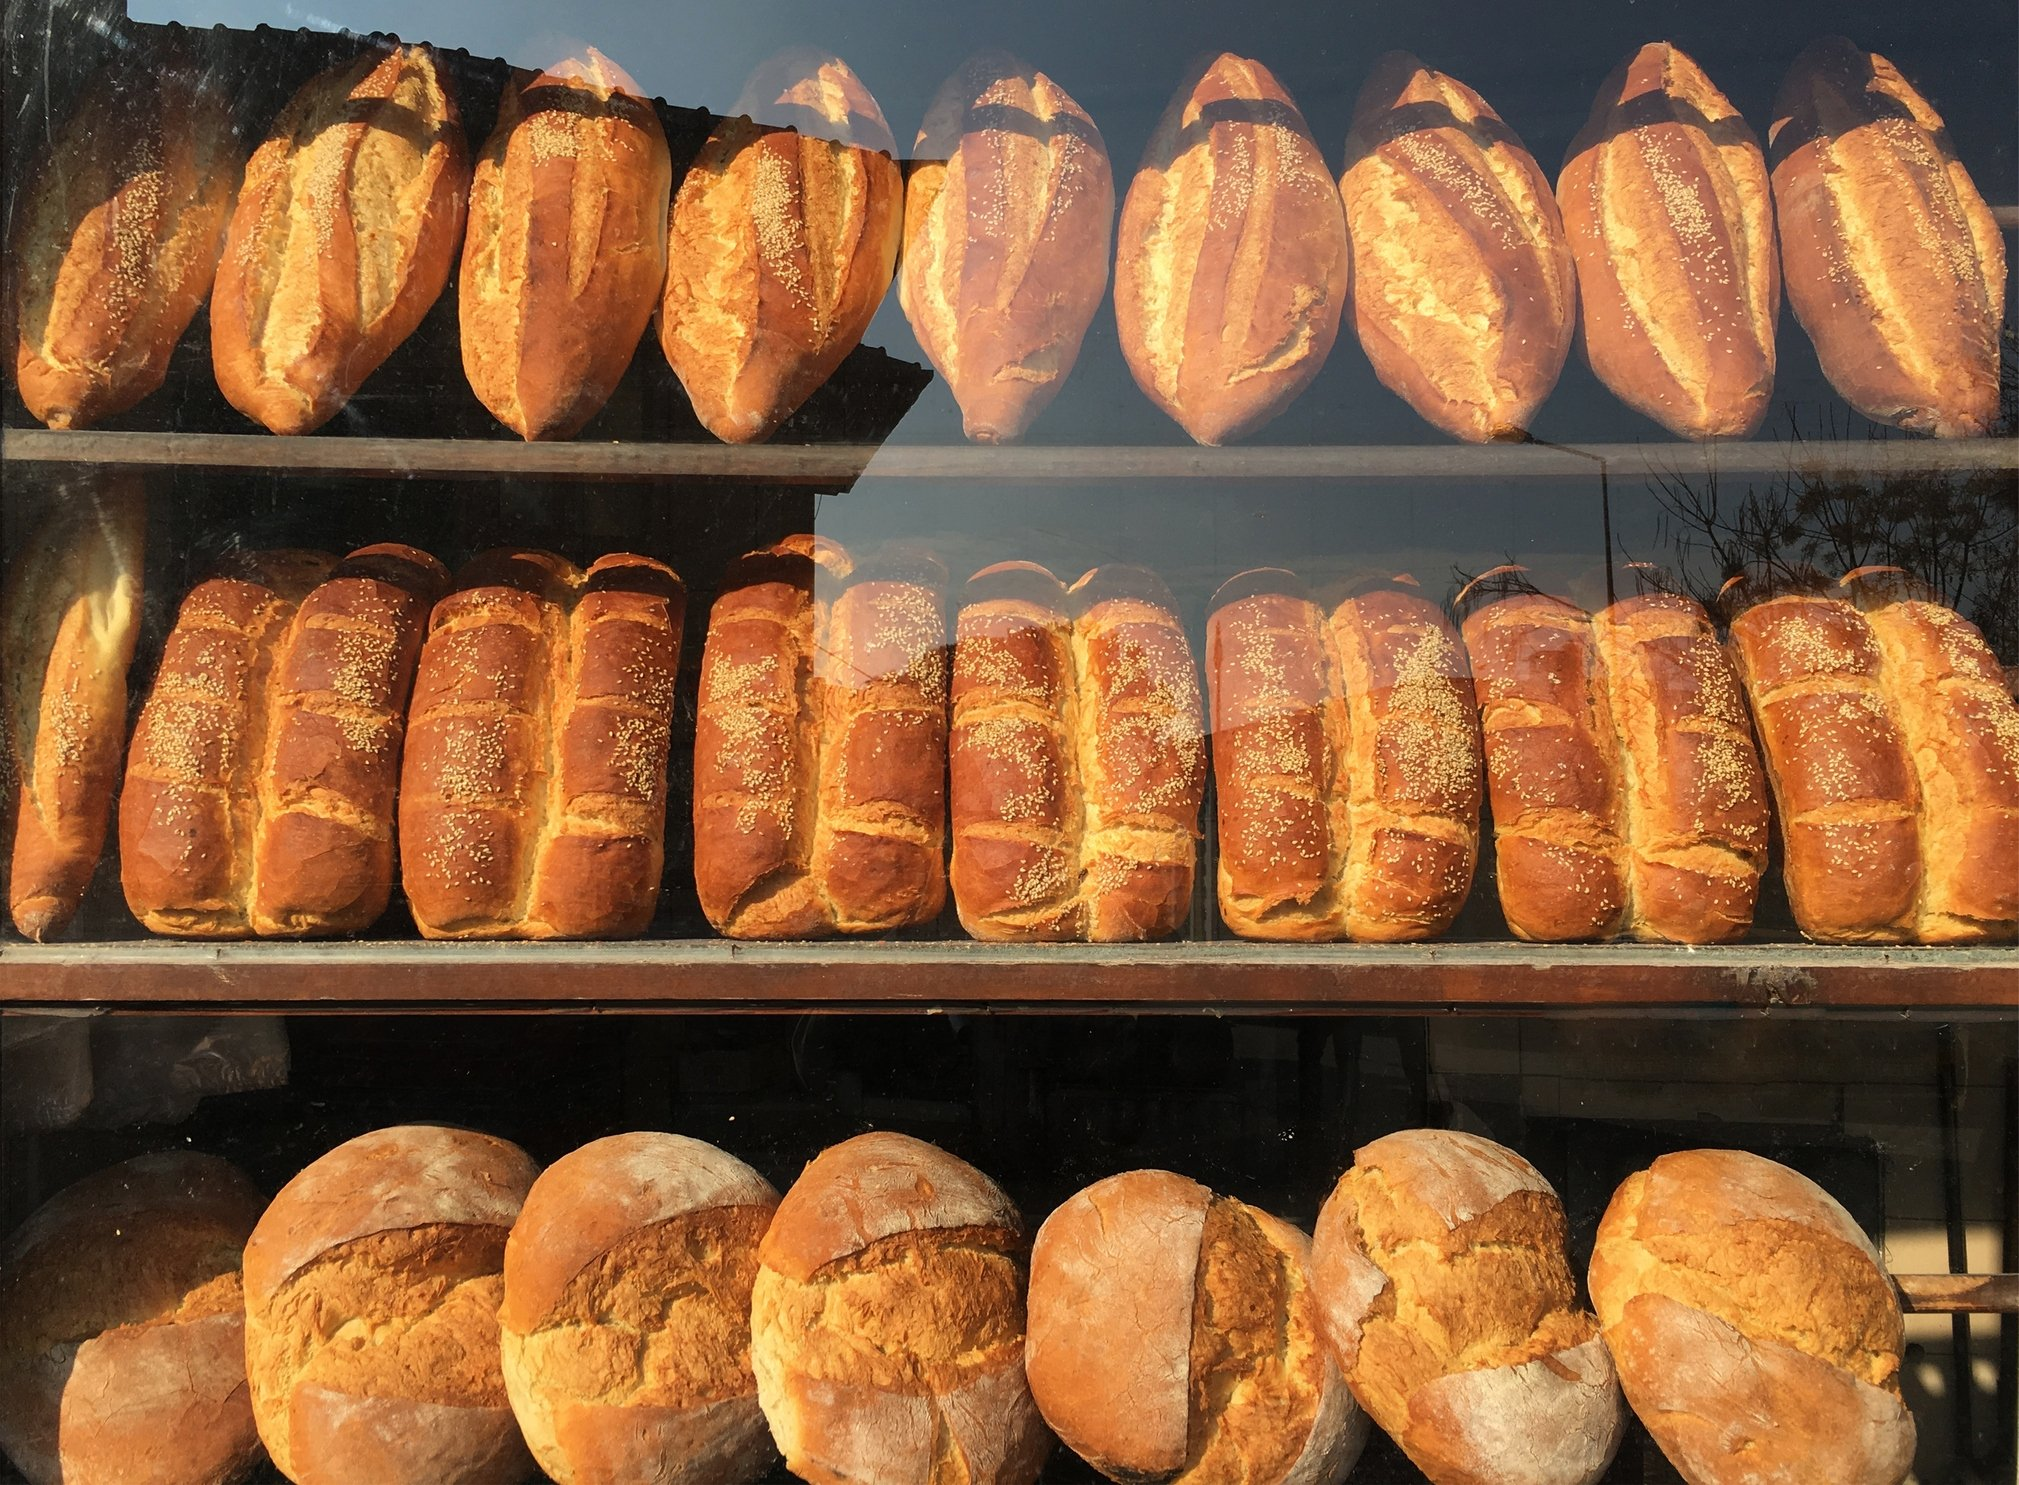 A range of breads, including classic white bread loaves (top) and Trabzon bread (bottom) are seen at a bakery in Buldan, Denizli, southwestern Turkey. (iStock Photo)